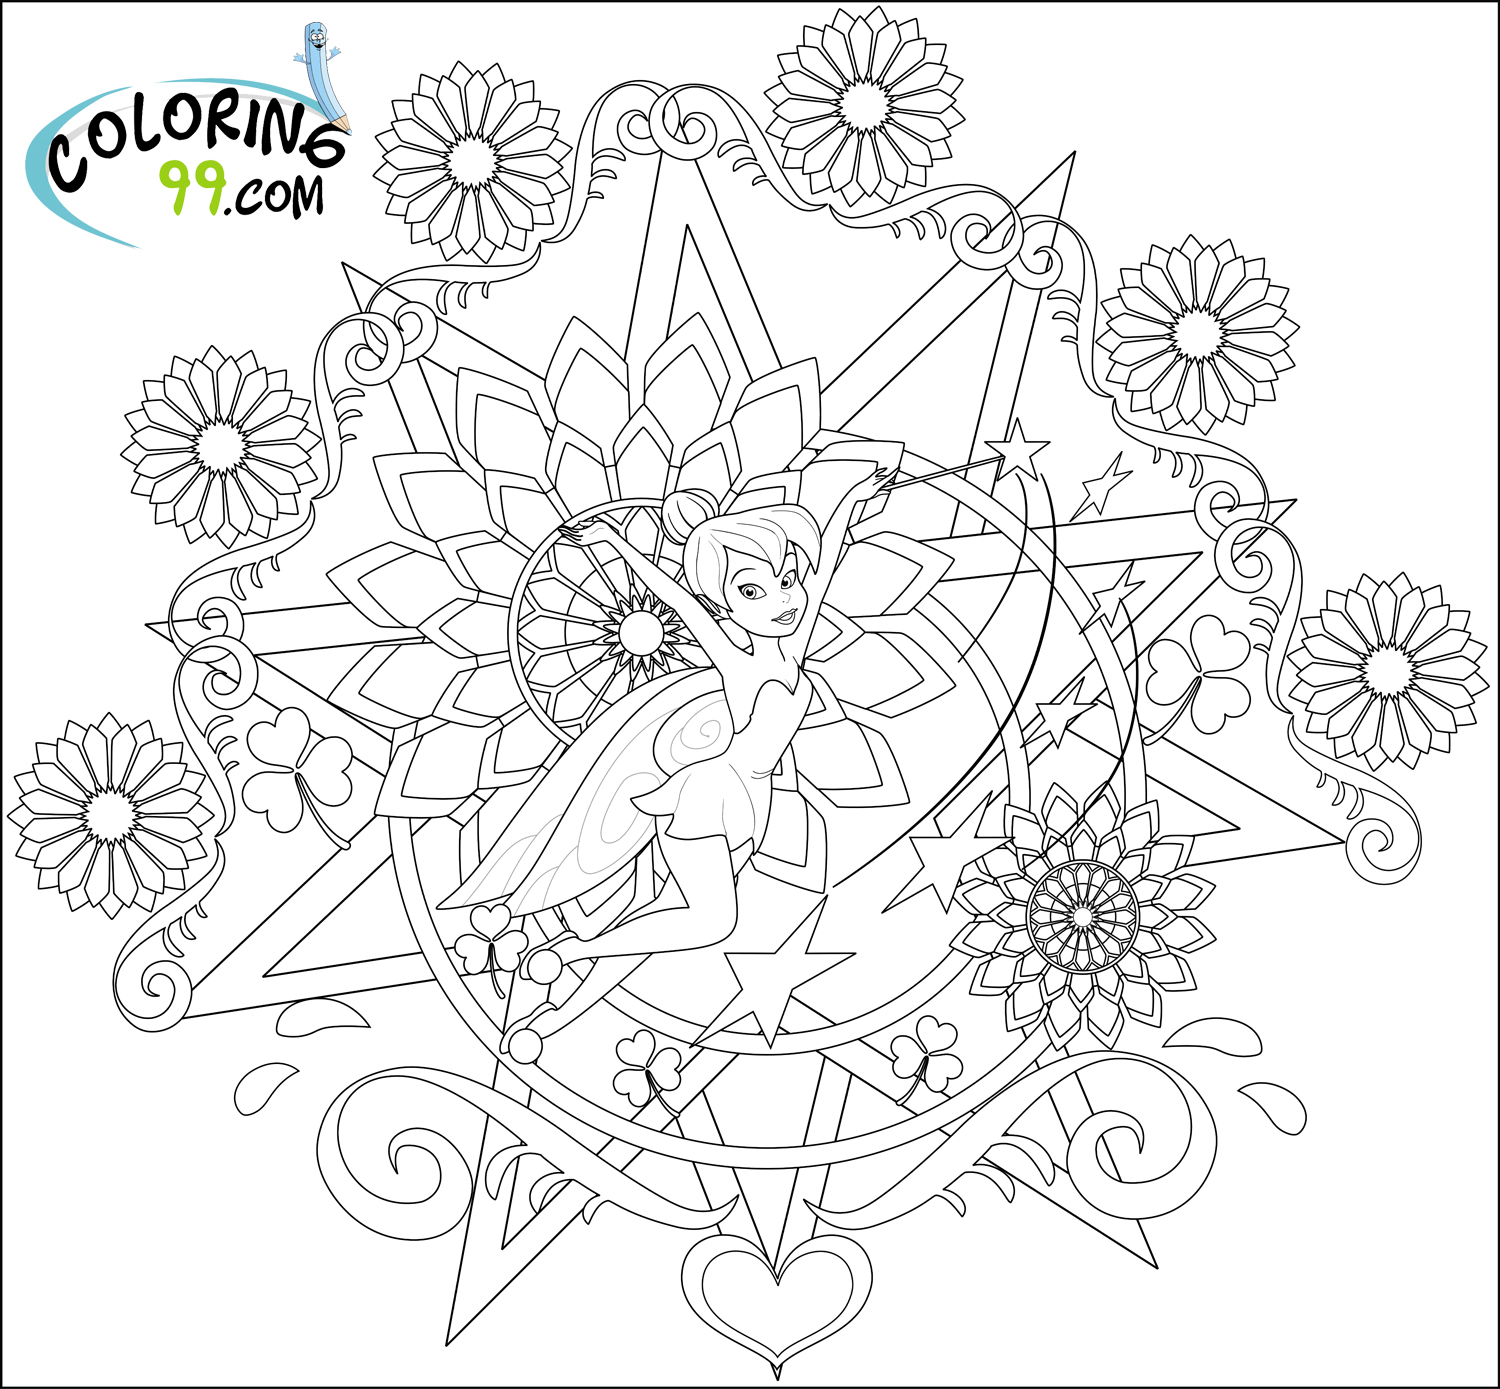 tinkerbell colouring in fairy coloring pages in colouring tinkerbell